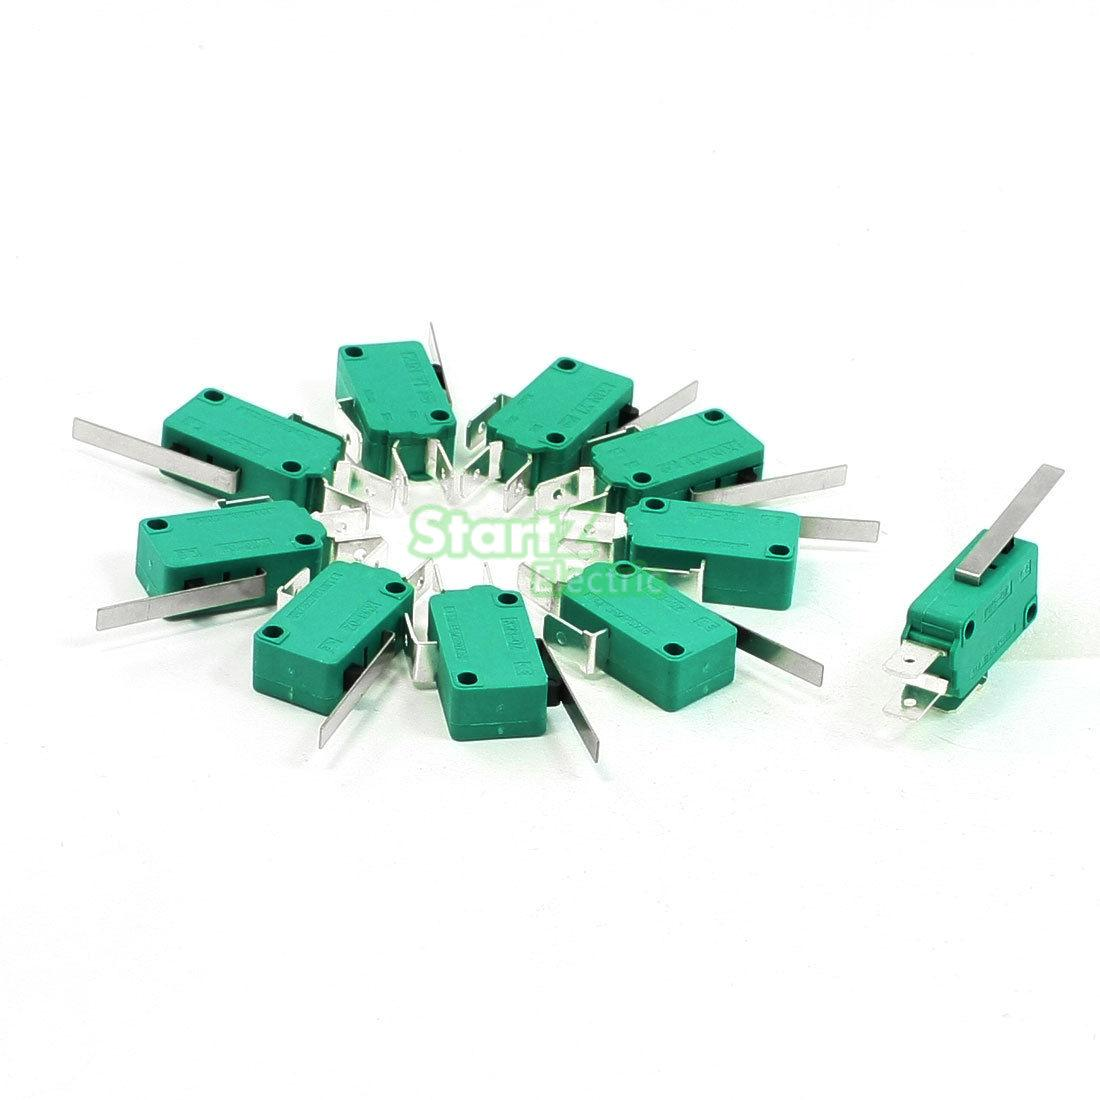 Switches Good 10pcs Microswitch Limit Switch 3pin N/o N/c Long Lever Microswitch Green Kw4-3z Lighting Accessories